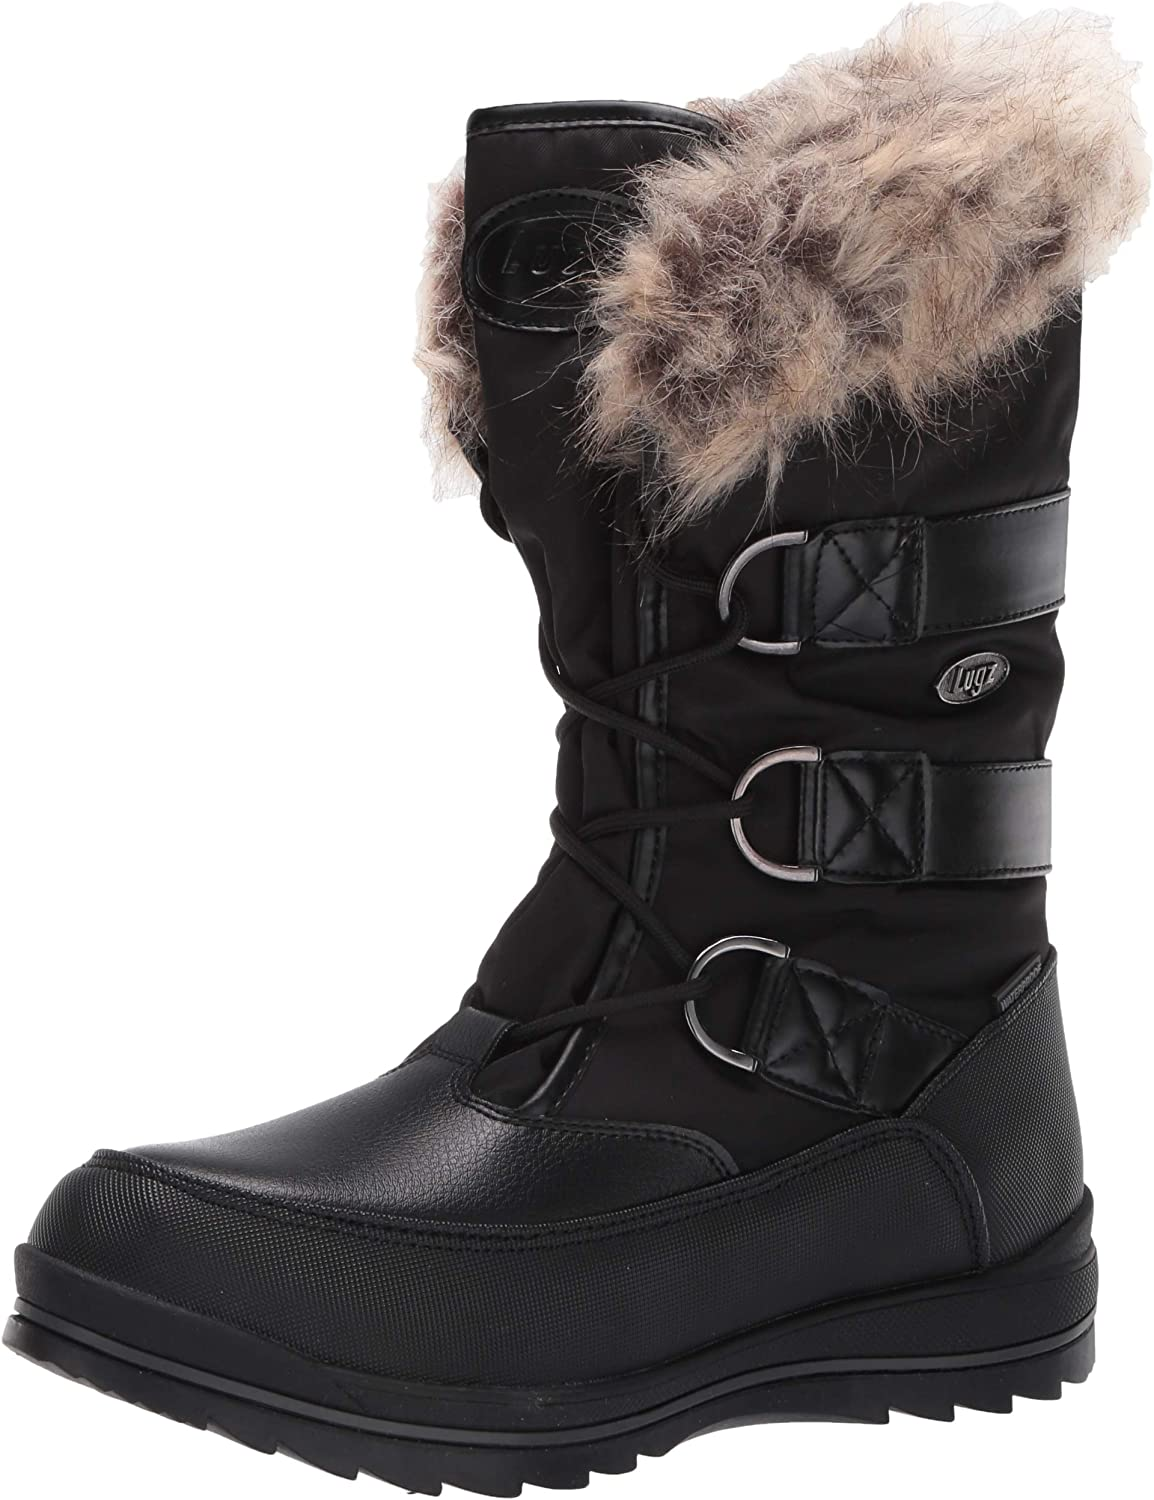 Lugz Sales Women's Tundra Boot Chukka Outlet SALE